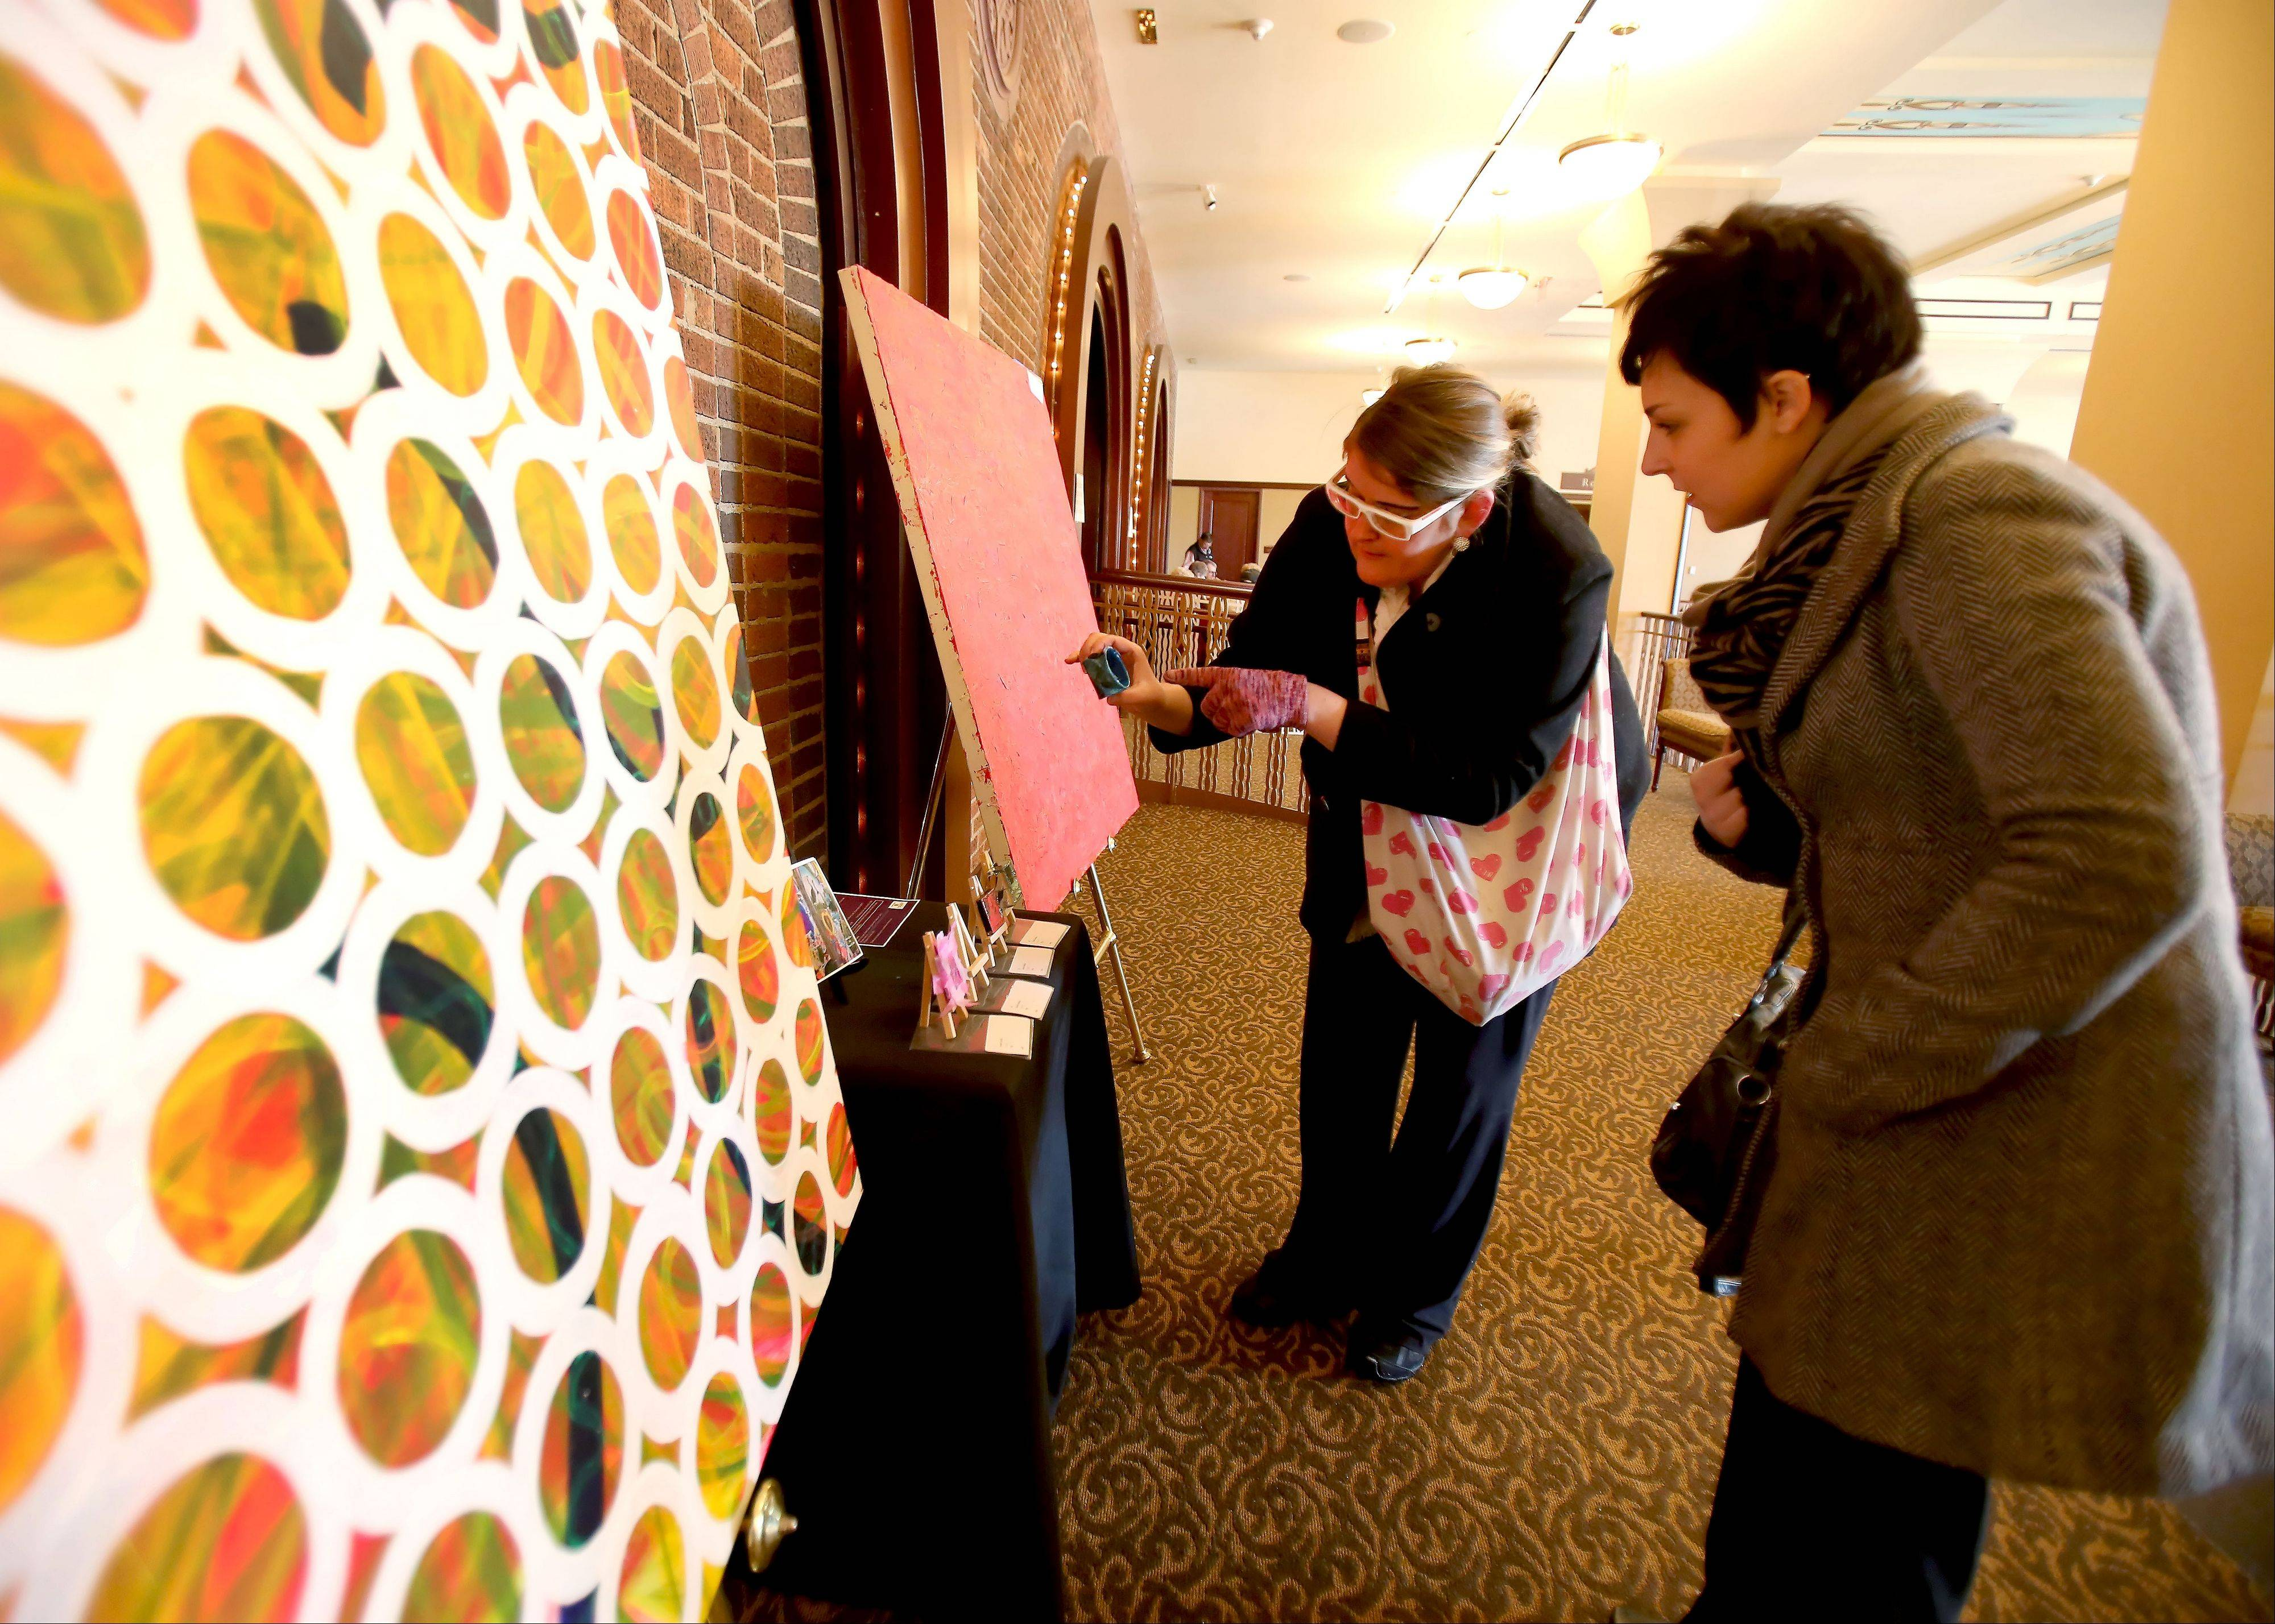 Melissa Hedlund shows Lisa Kolodziej, right, art she has had on display at the Paramount Theatre in Aurora. A fan of acrylics, Hedlund spends only about five hours a month working on her own artwork and devotes the rest of her time art therapy projects.